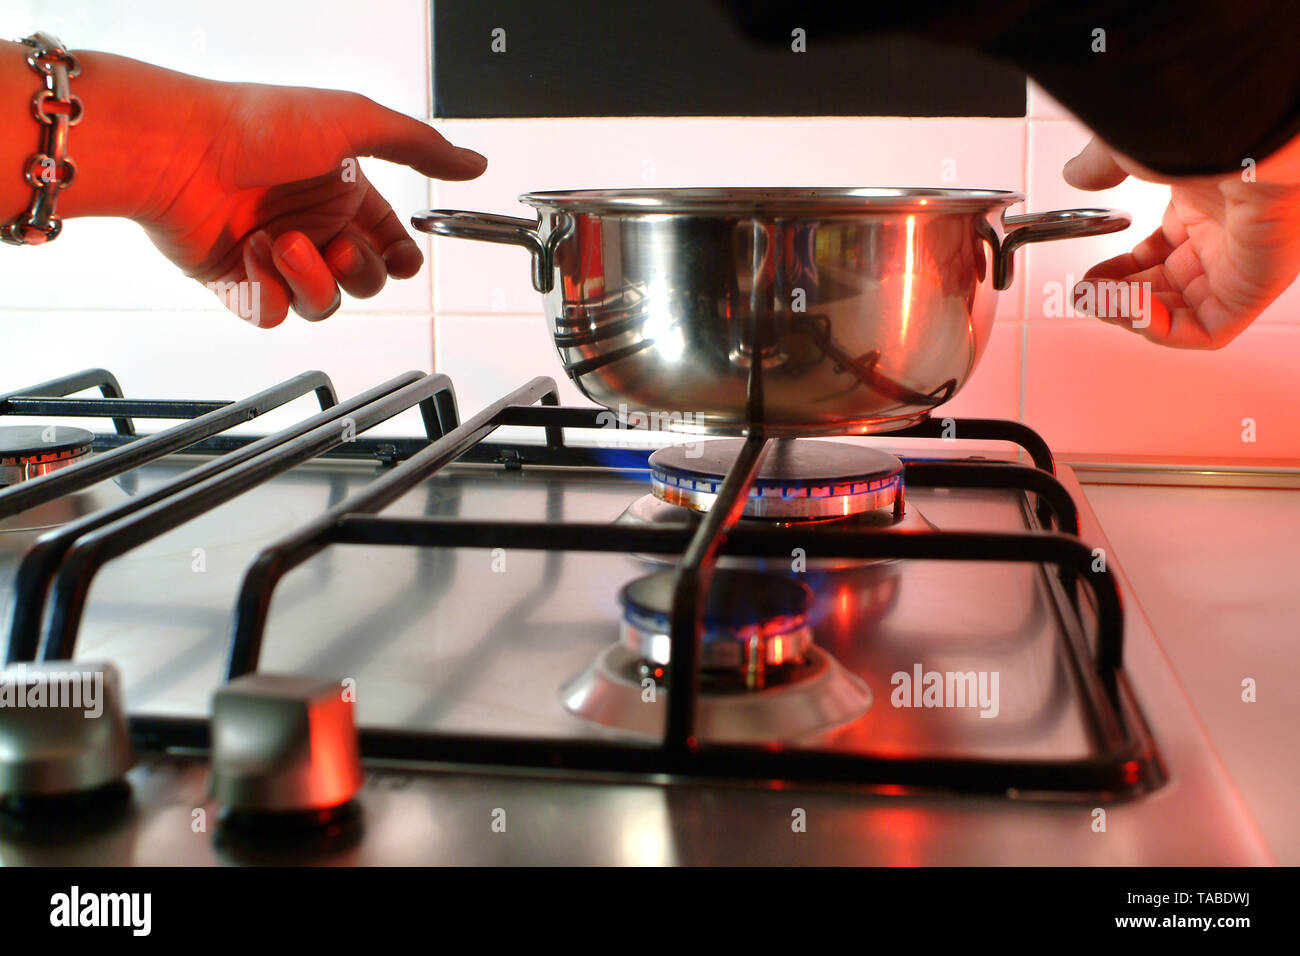 Domestic accidents, burns with hot water. - Stock Image